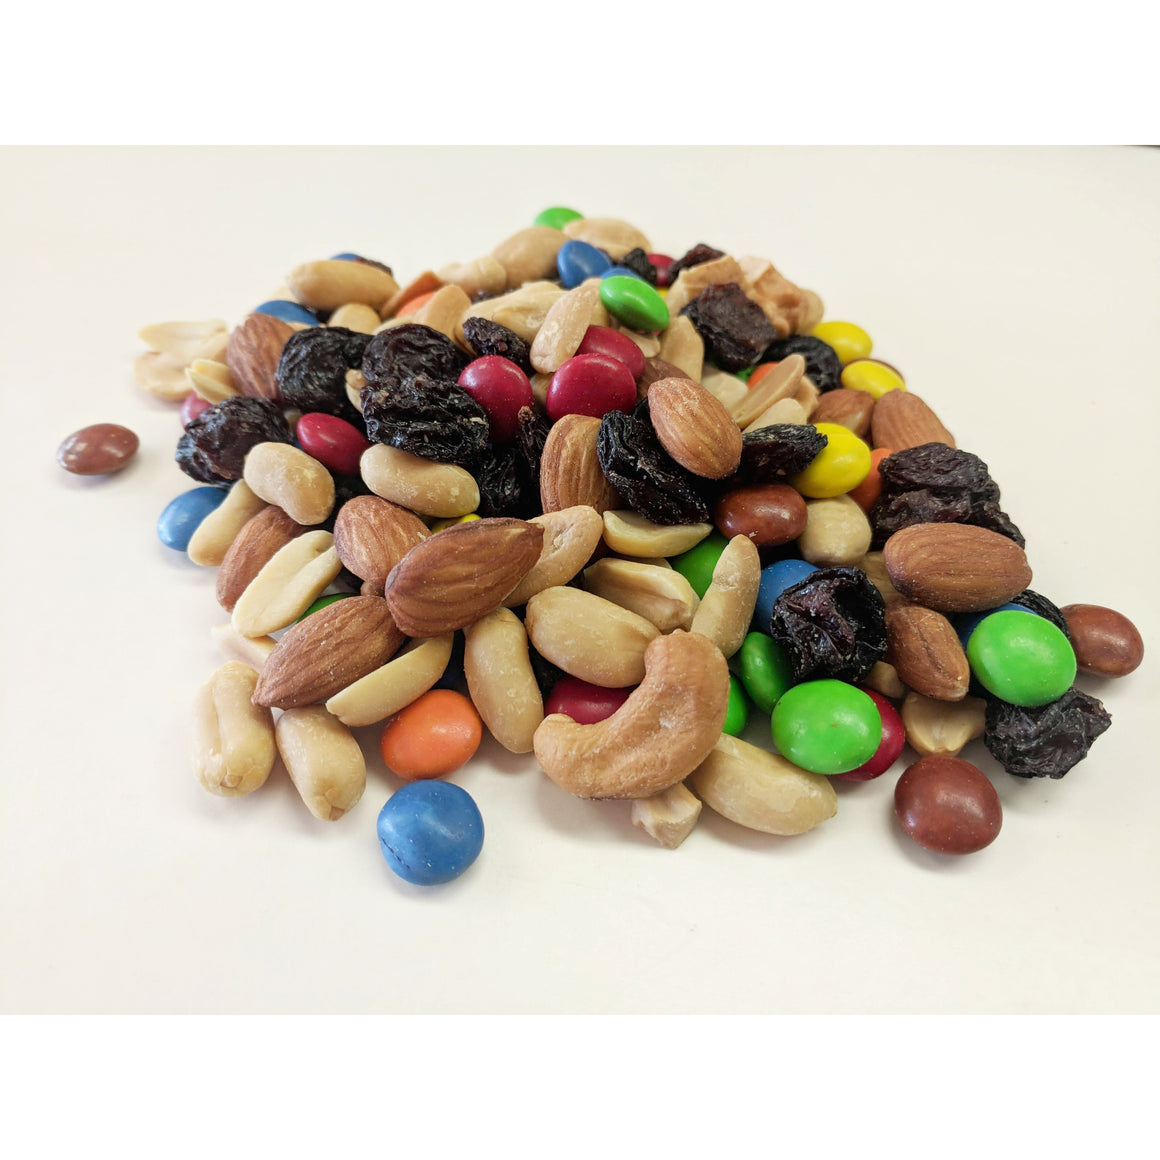 Brad's Sweet & Salty Trail Mix